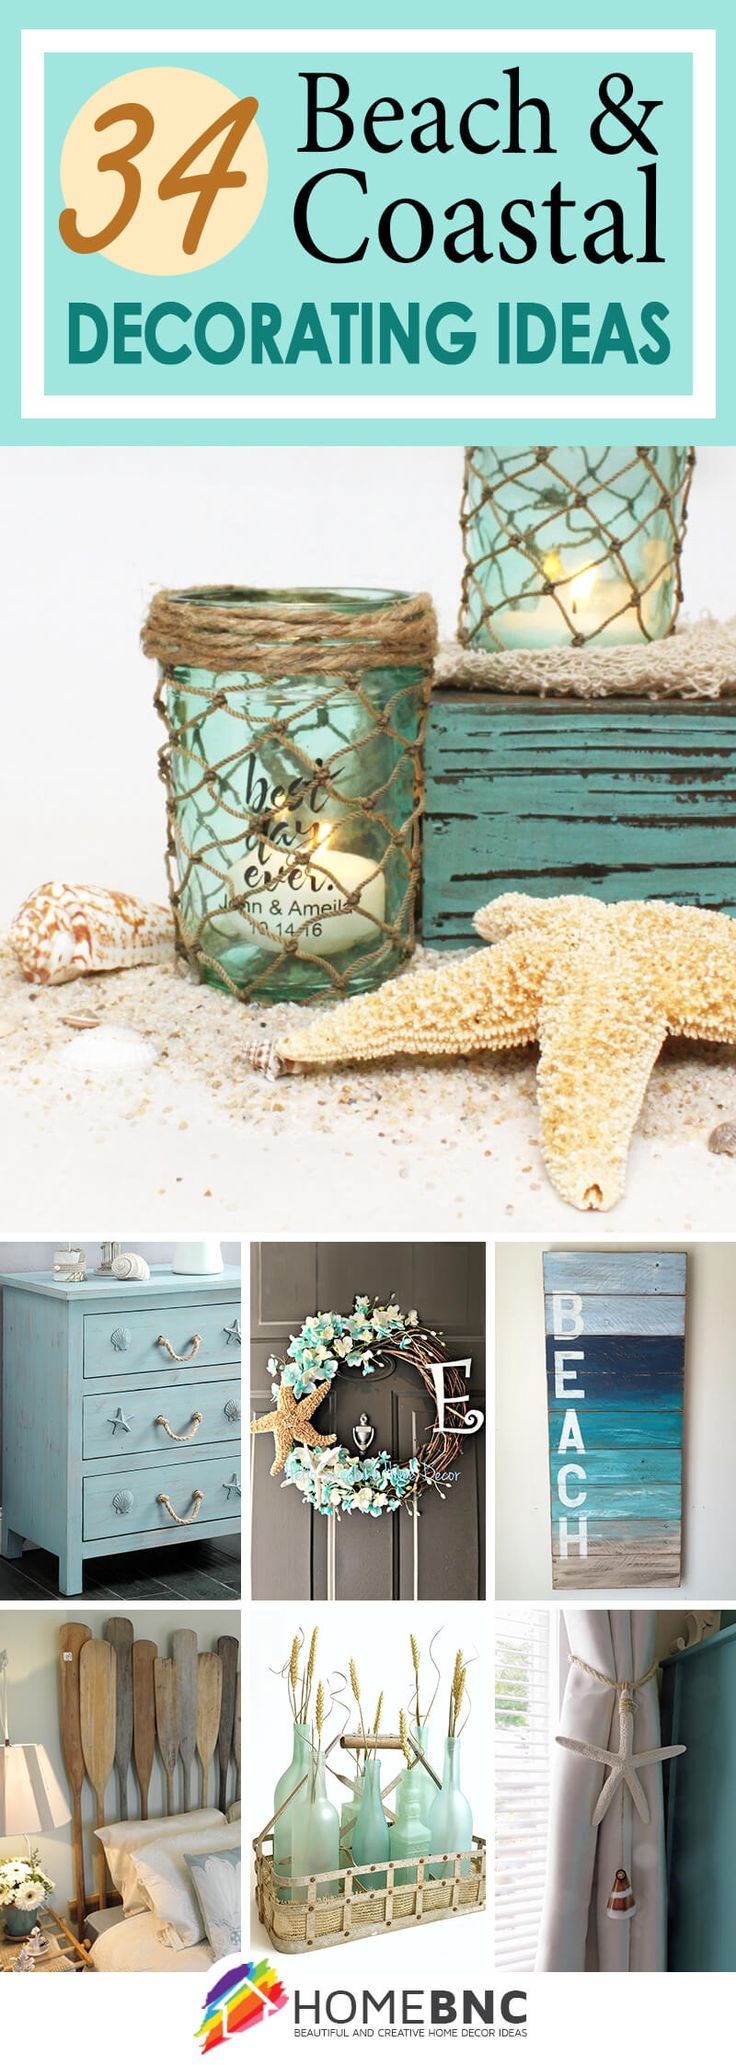 best 20 beach house decor ideas on pinterest beach decorations seaside bathroom and coastal decor - Beach House Decorating Ideas